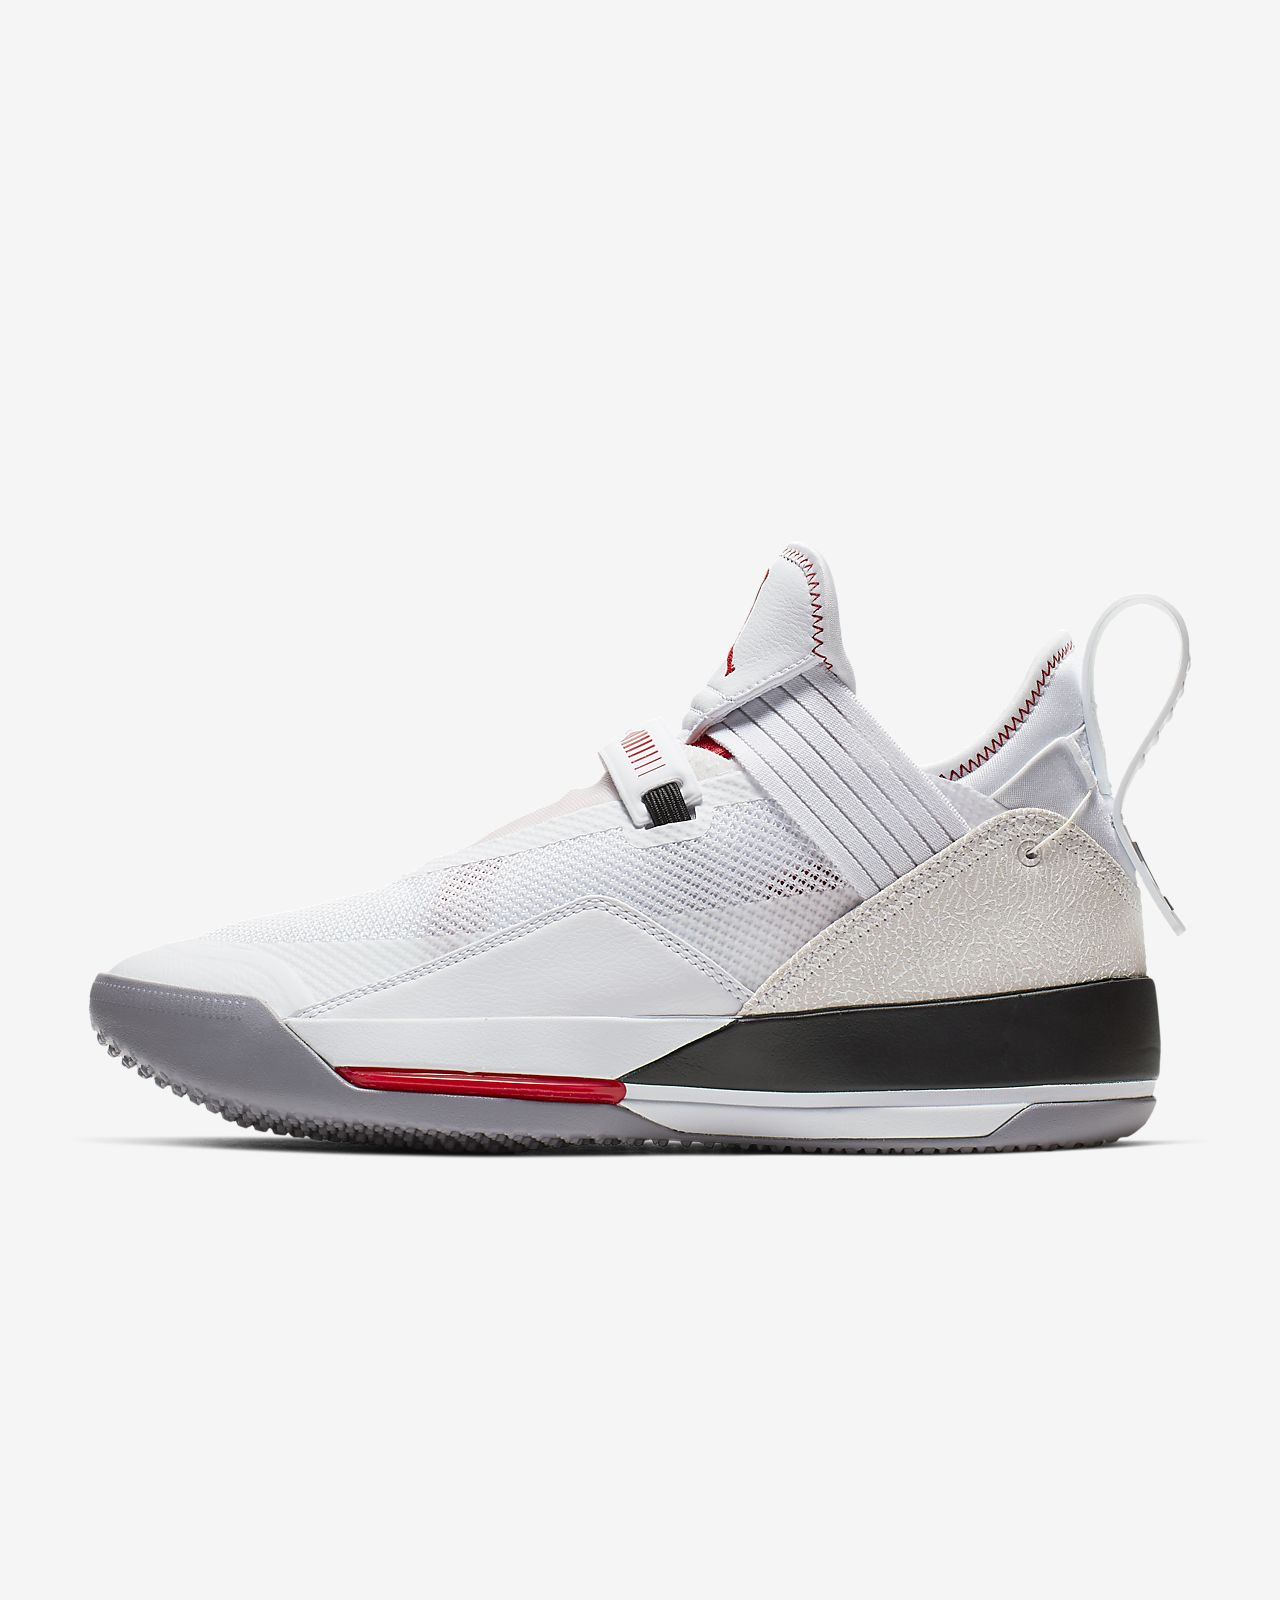 5f60a32abde Air Jordan XXXIII SE Men s Basketball Shoe. Nike.com SI